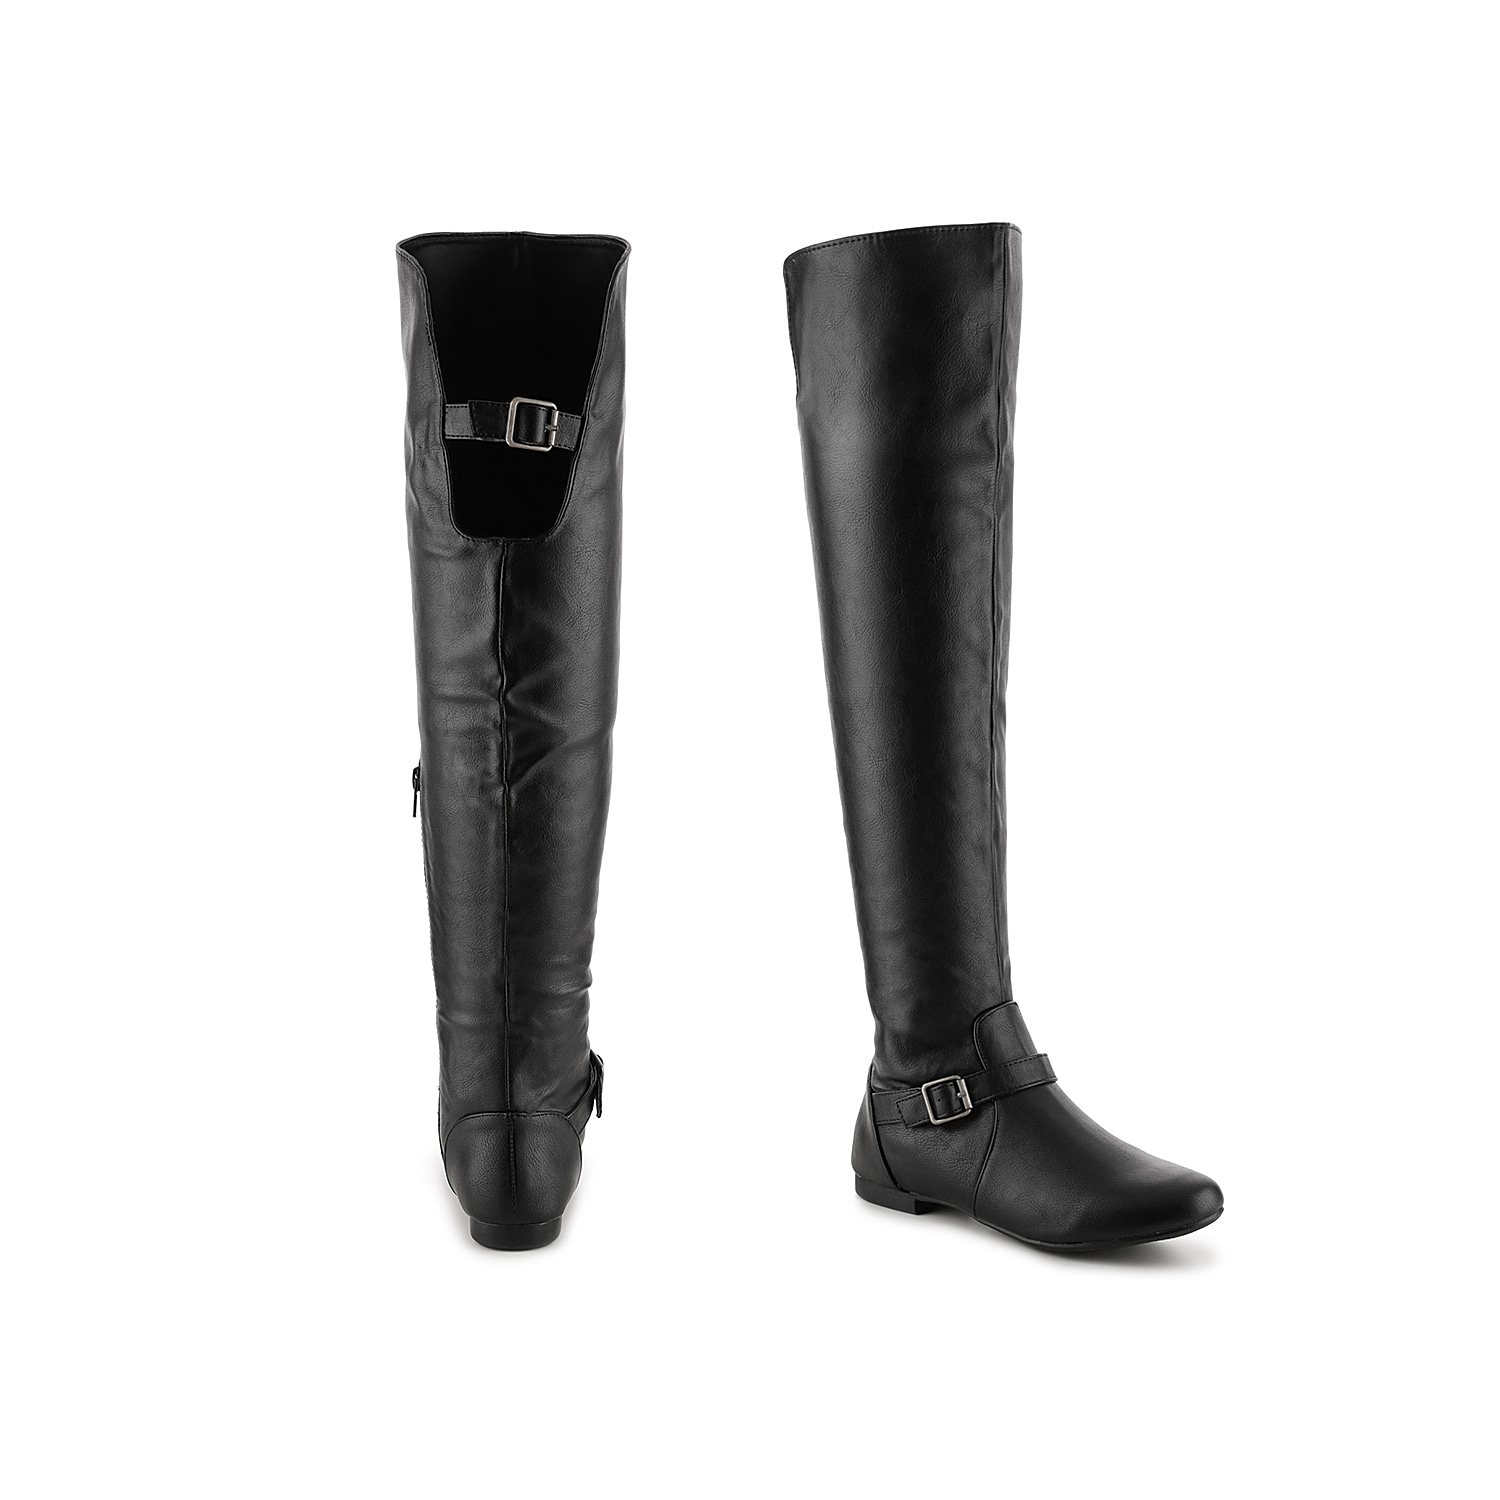 The Journee Collection Loft riding boot has buckle strap details and a classic silhouette for a must-have style. These versatile knee high boots are the perfect flat boot for your casual wardrobe.Click here for Boot Measuring Guide.